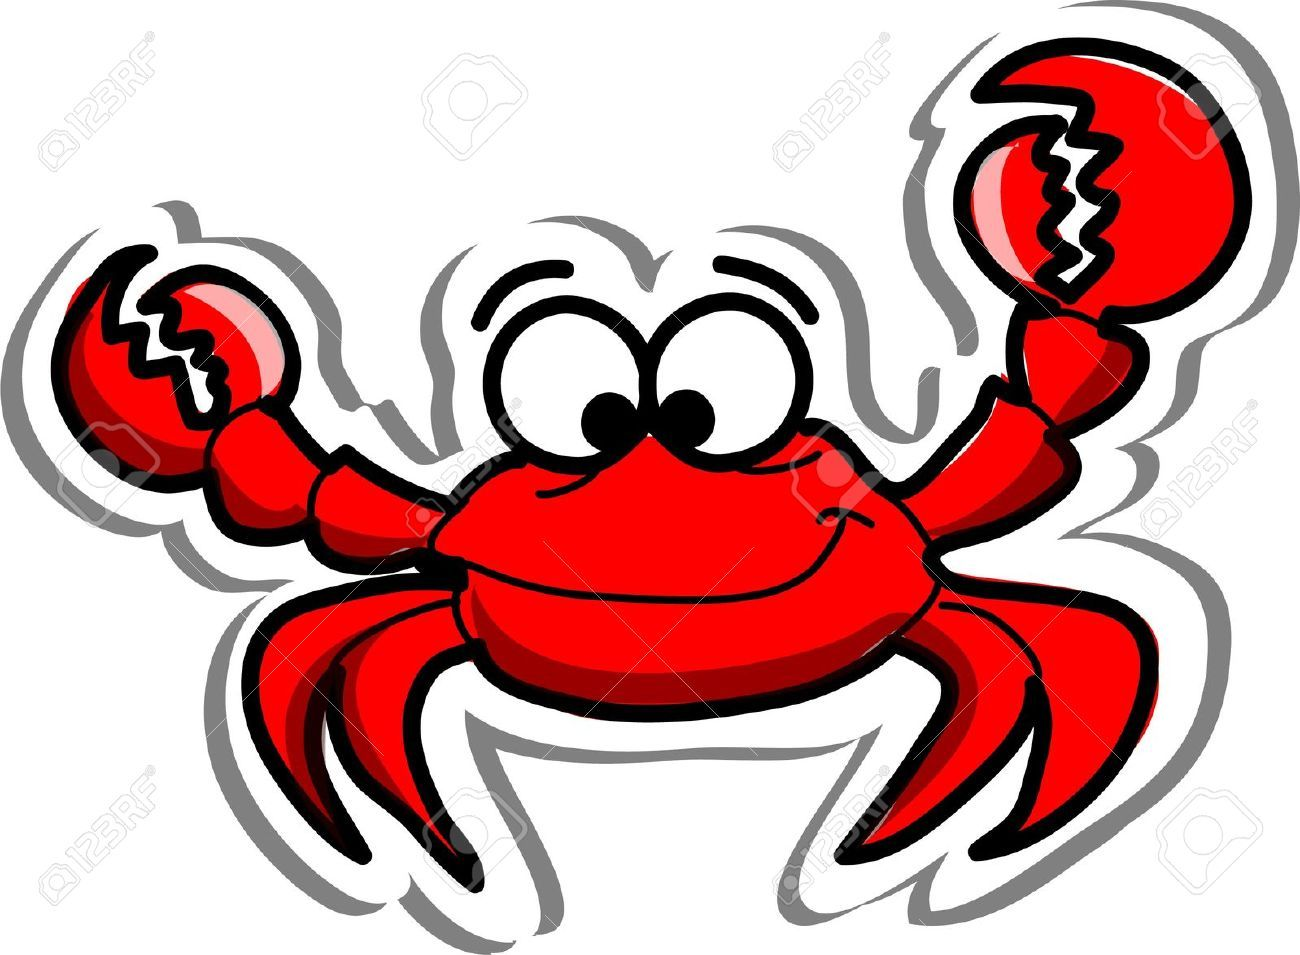 hight resolution of crabs stock illustrations cliparts and royalty free crabs vectors